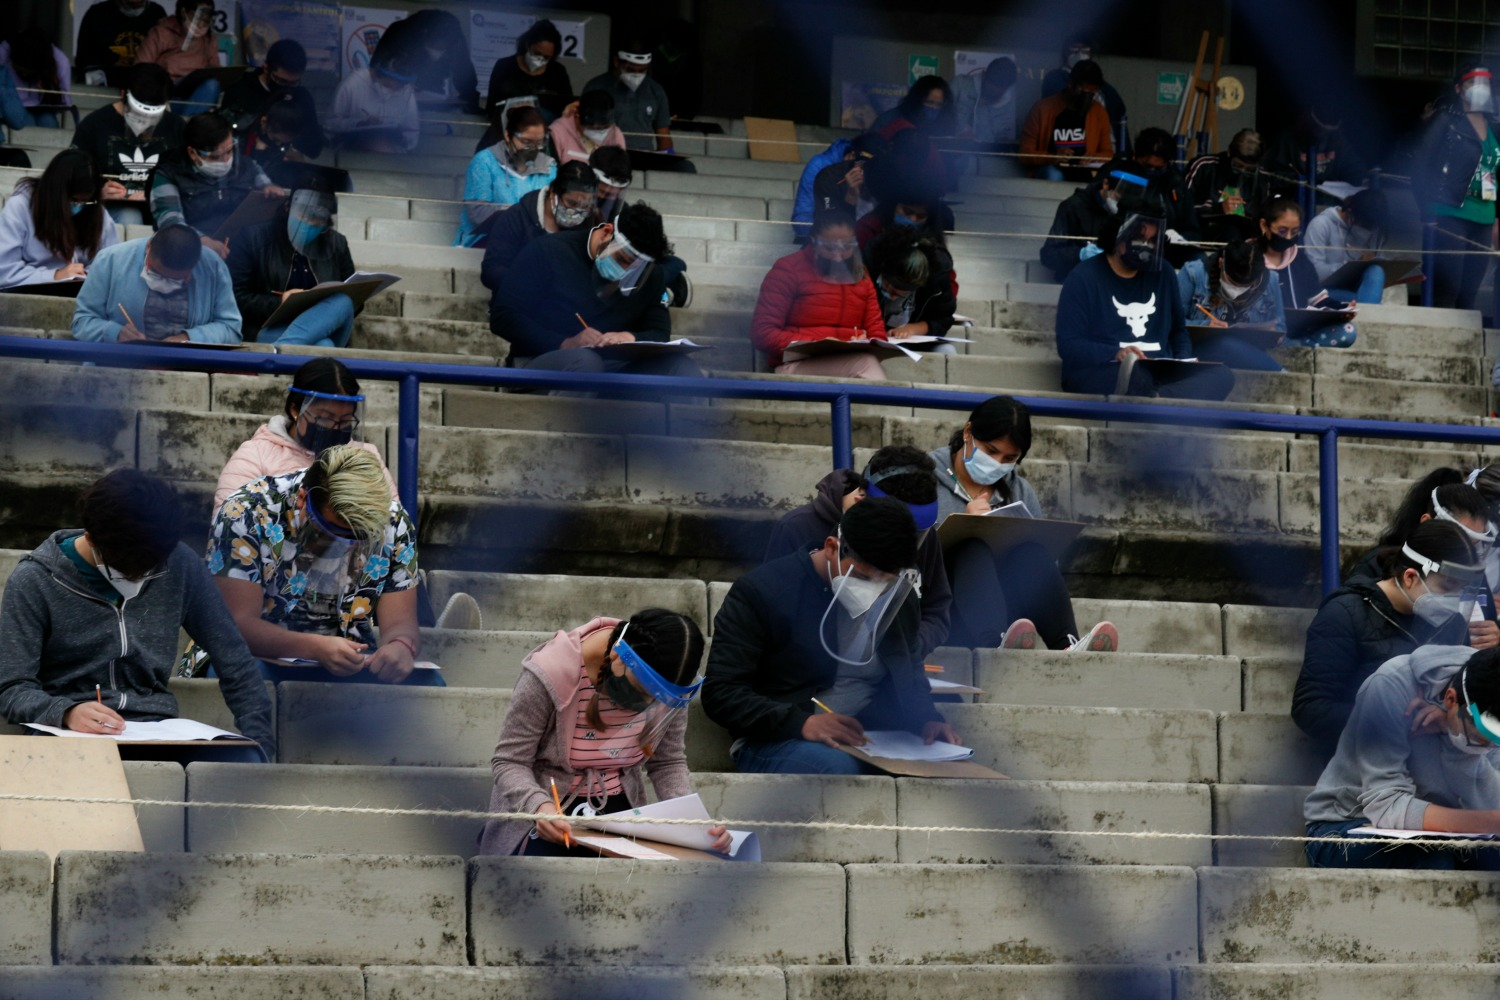 Students take an entrance exam in a stadium in Mexico City.